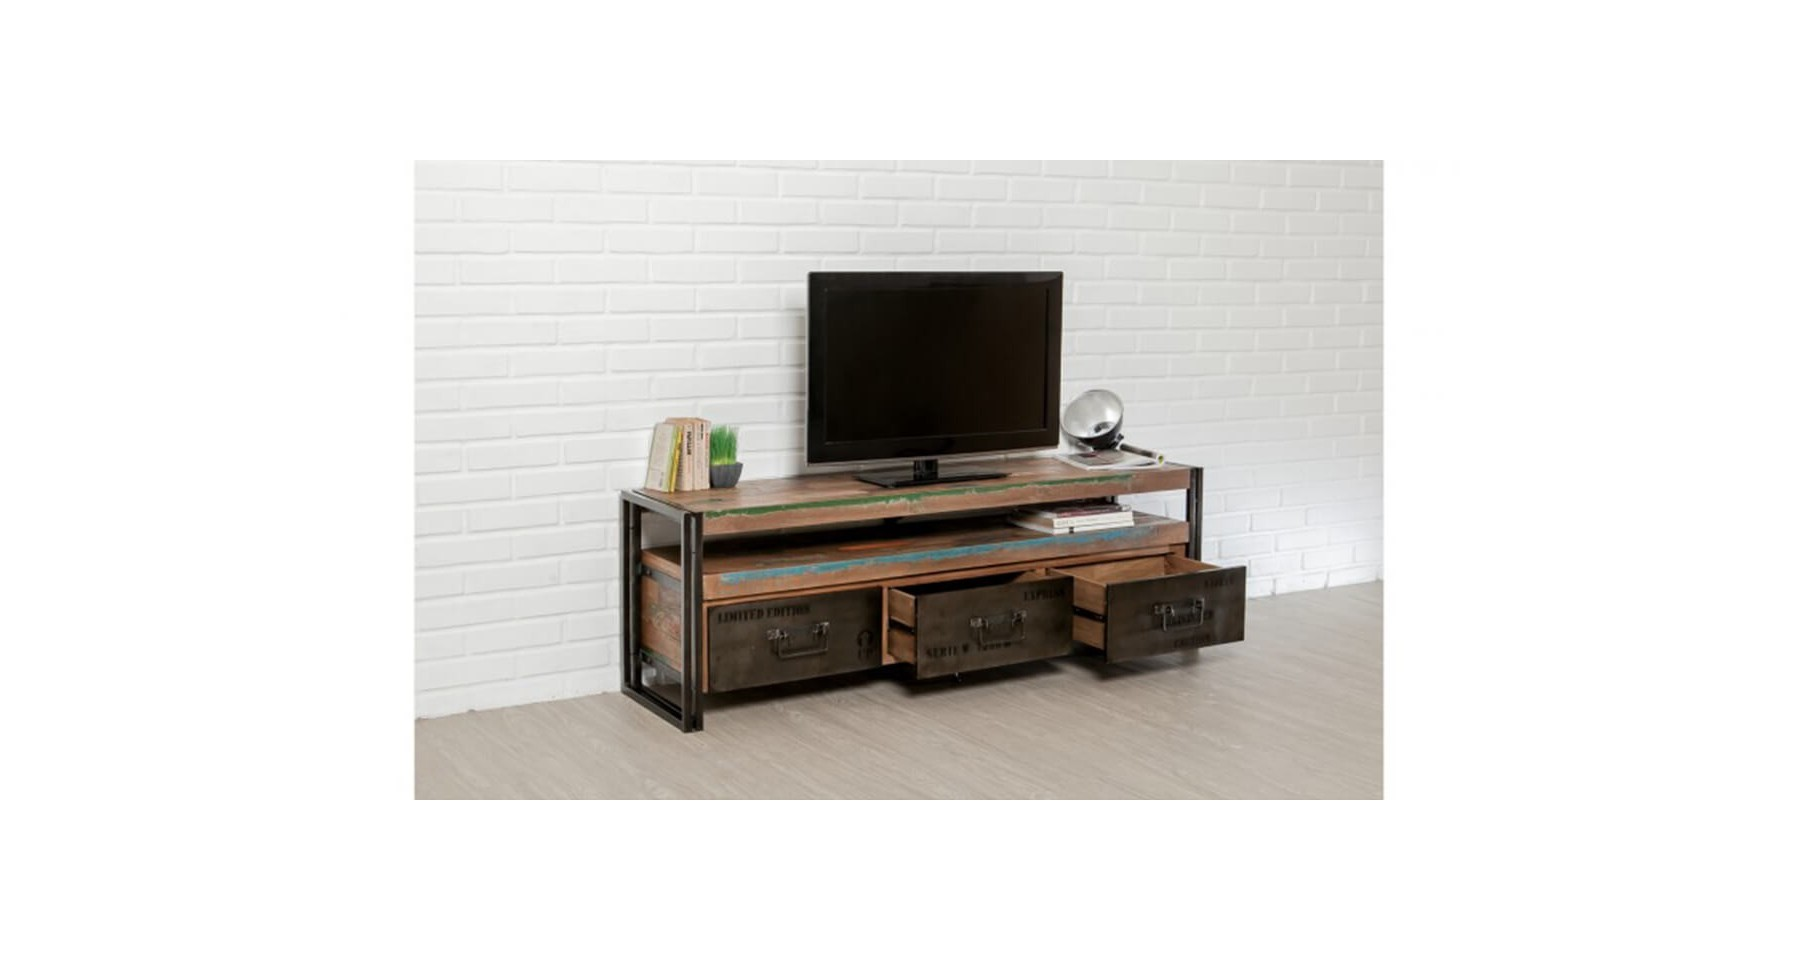 meuble tv ethnique en bois recycl et m tal colorada. Black Bedroom Furniture Sets. Home Design Ideas